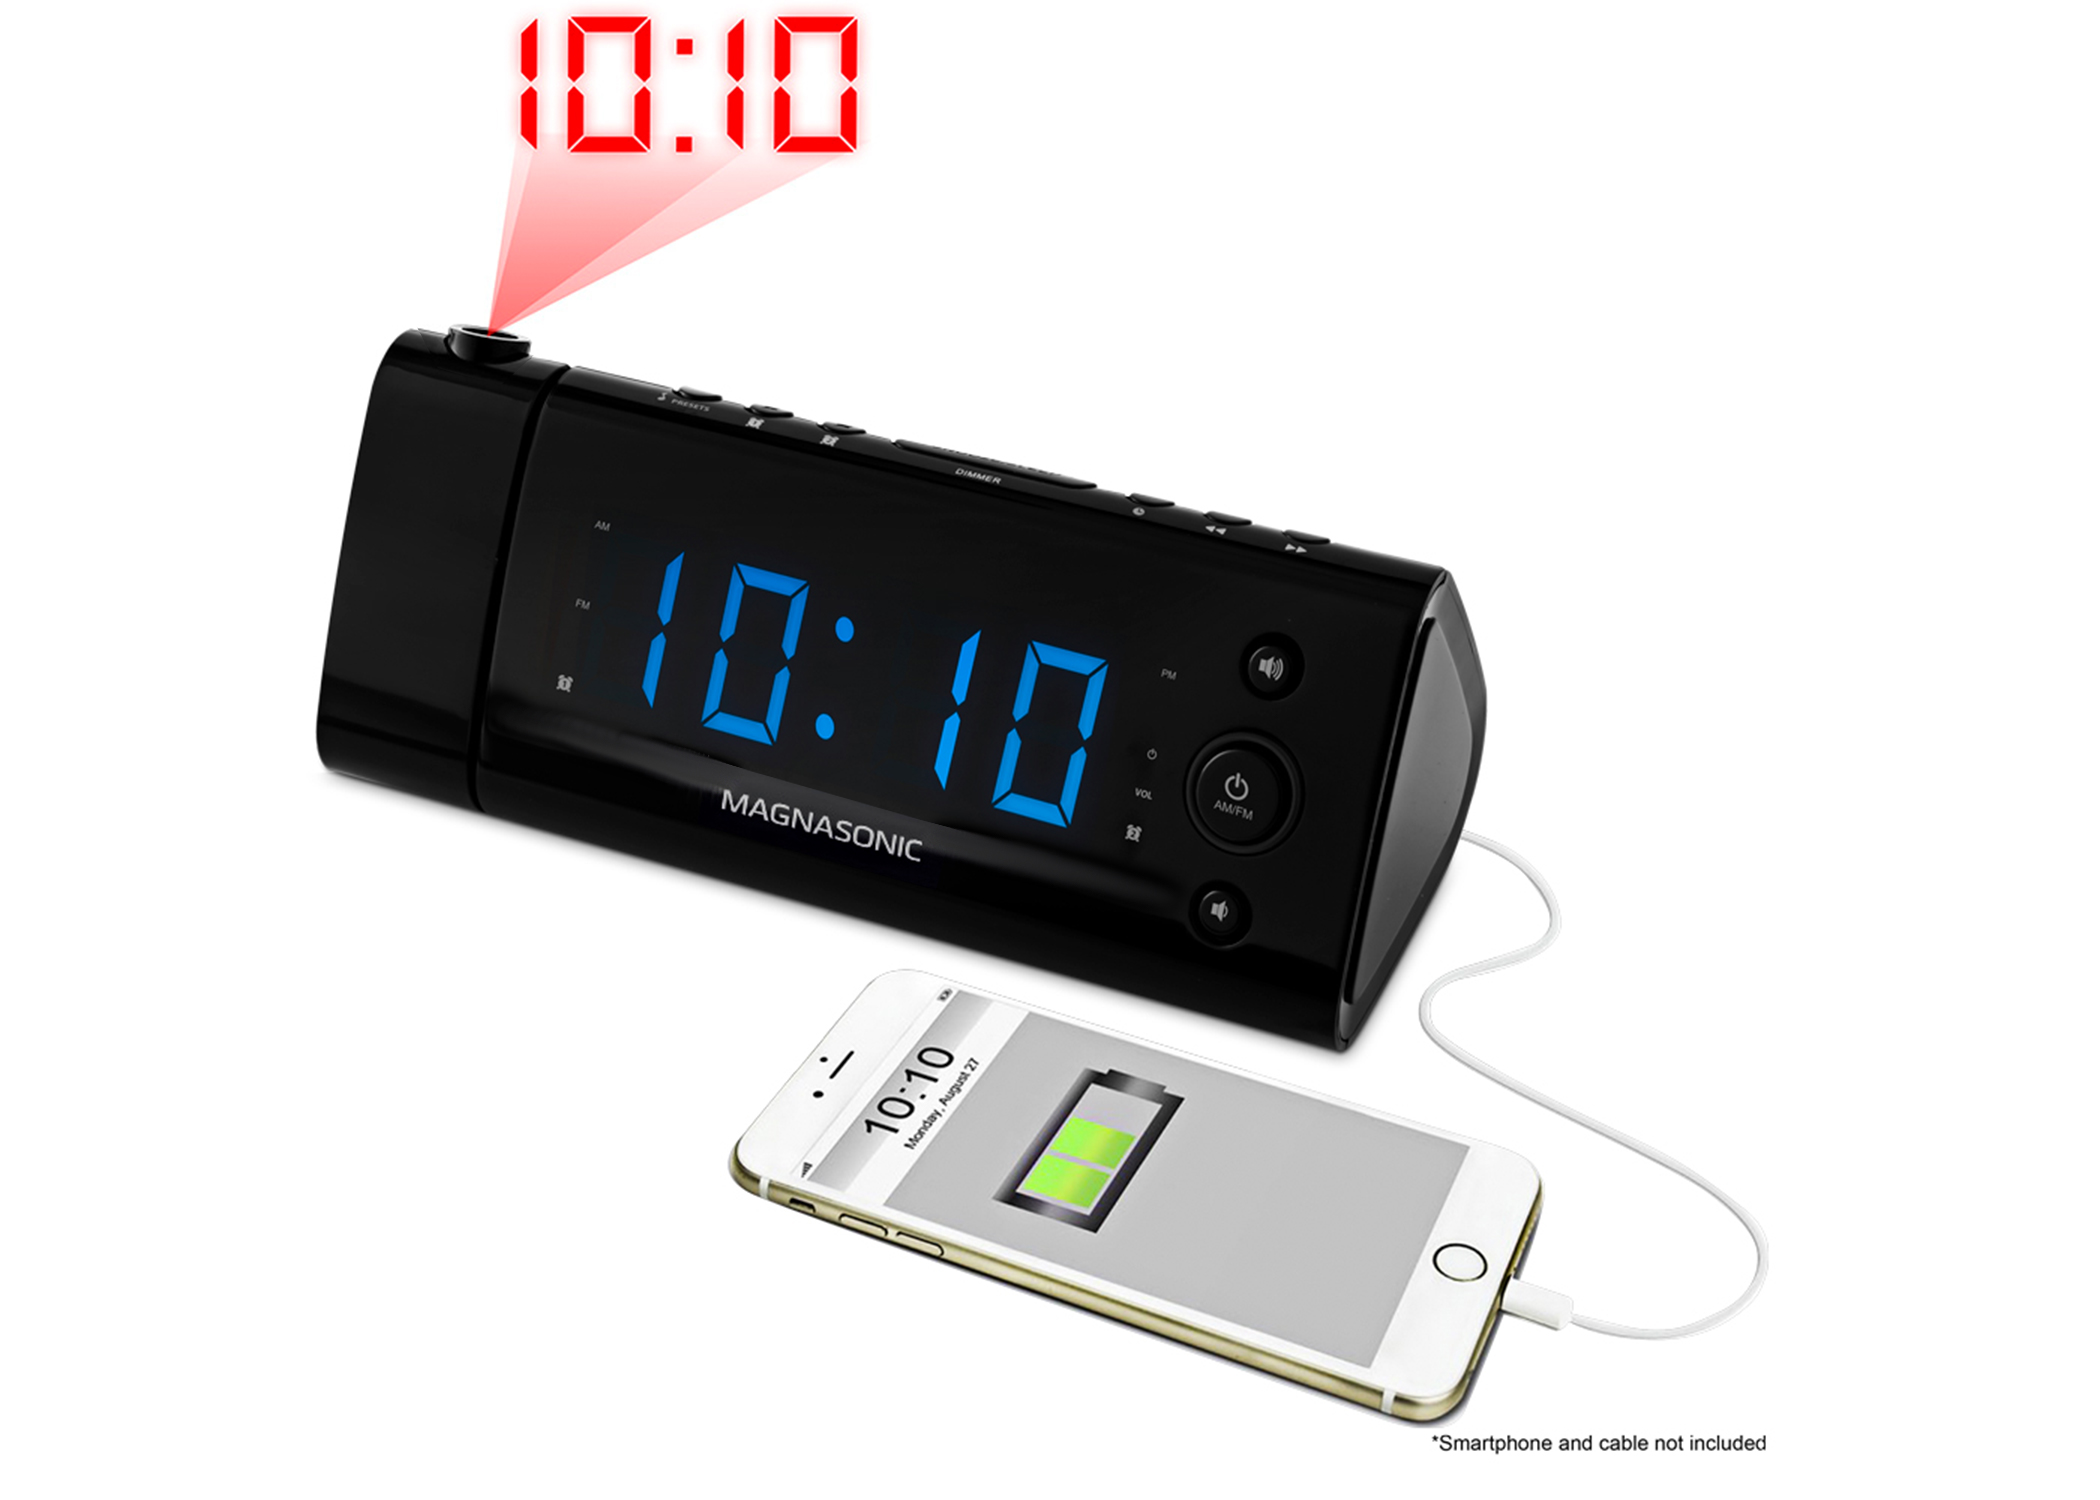 Electrohome USB Charging Alarm Clock Radio with Time Projection, Battery Backup, Auto Time Set, Dual Alarm, 1.2? LED at Sears.com